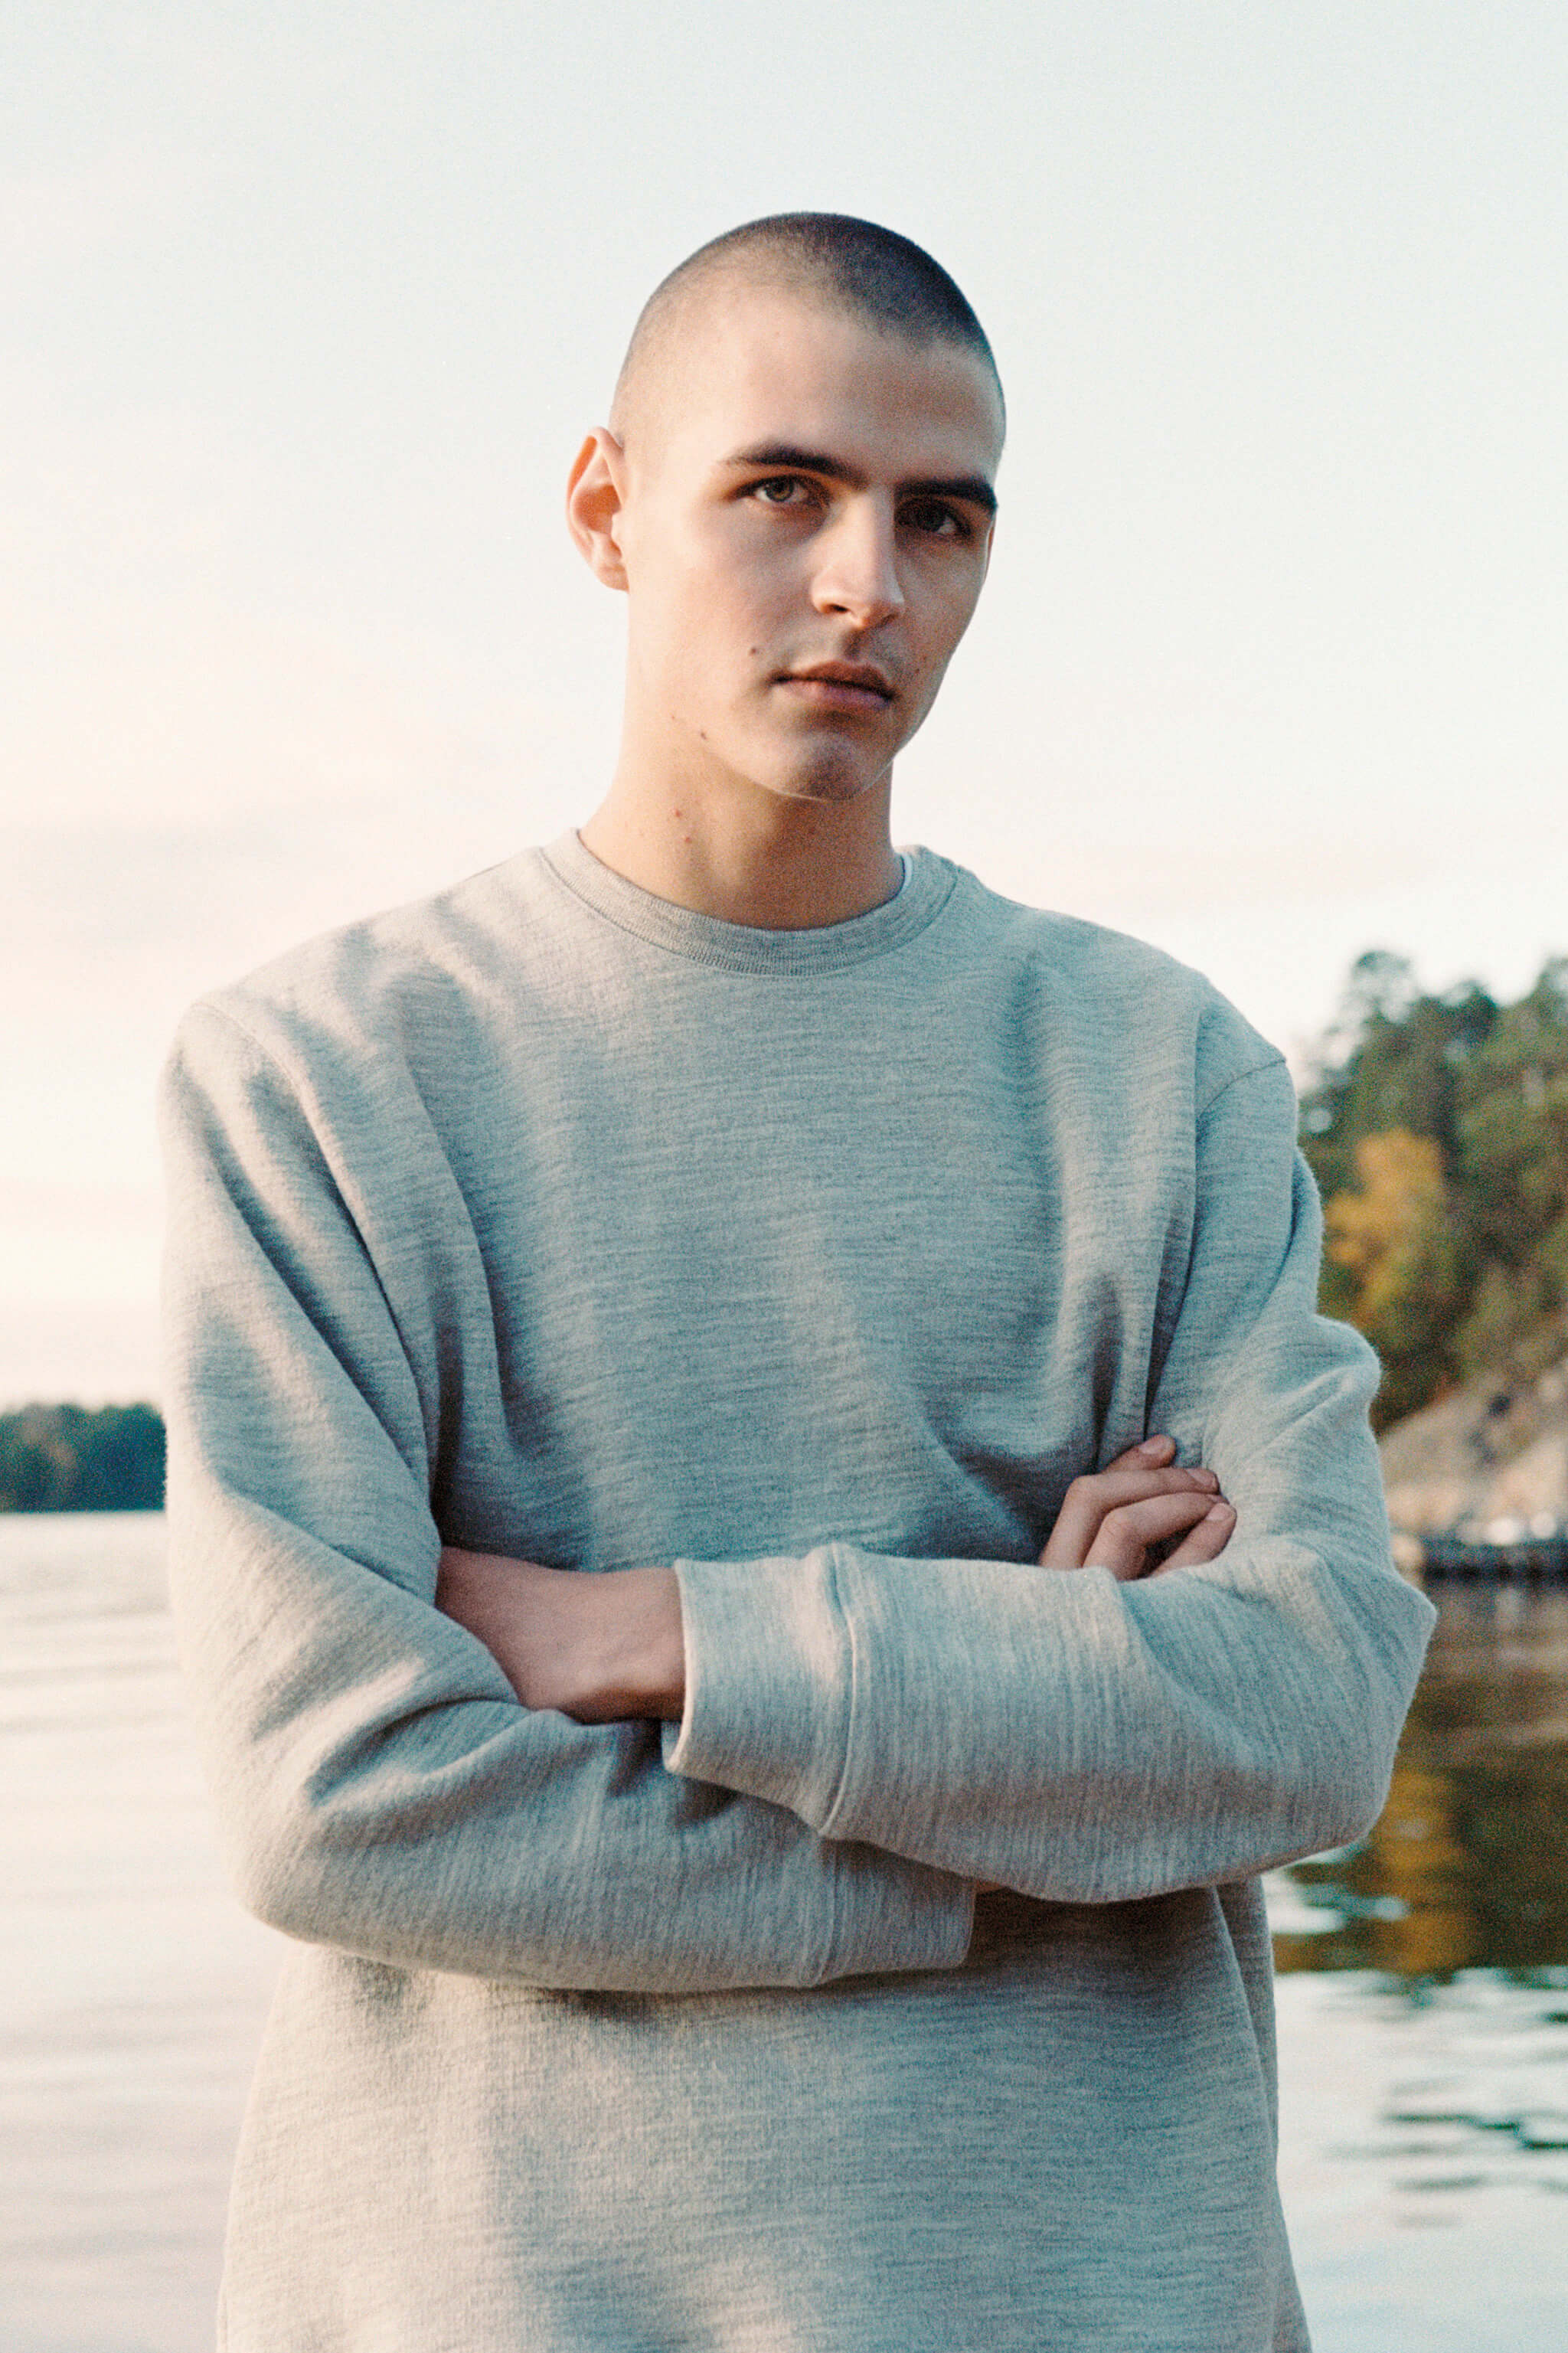 A man with a shaved head of white Swedish descent wearing a grey sweatshirt looks into the camera with his arms folded